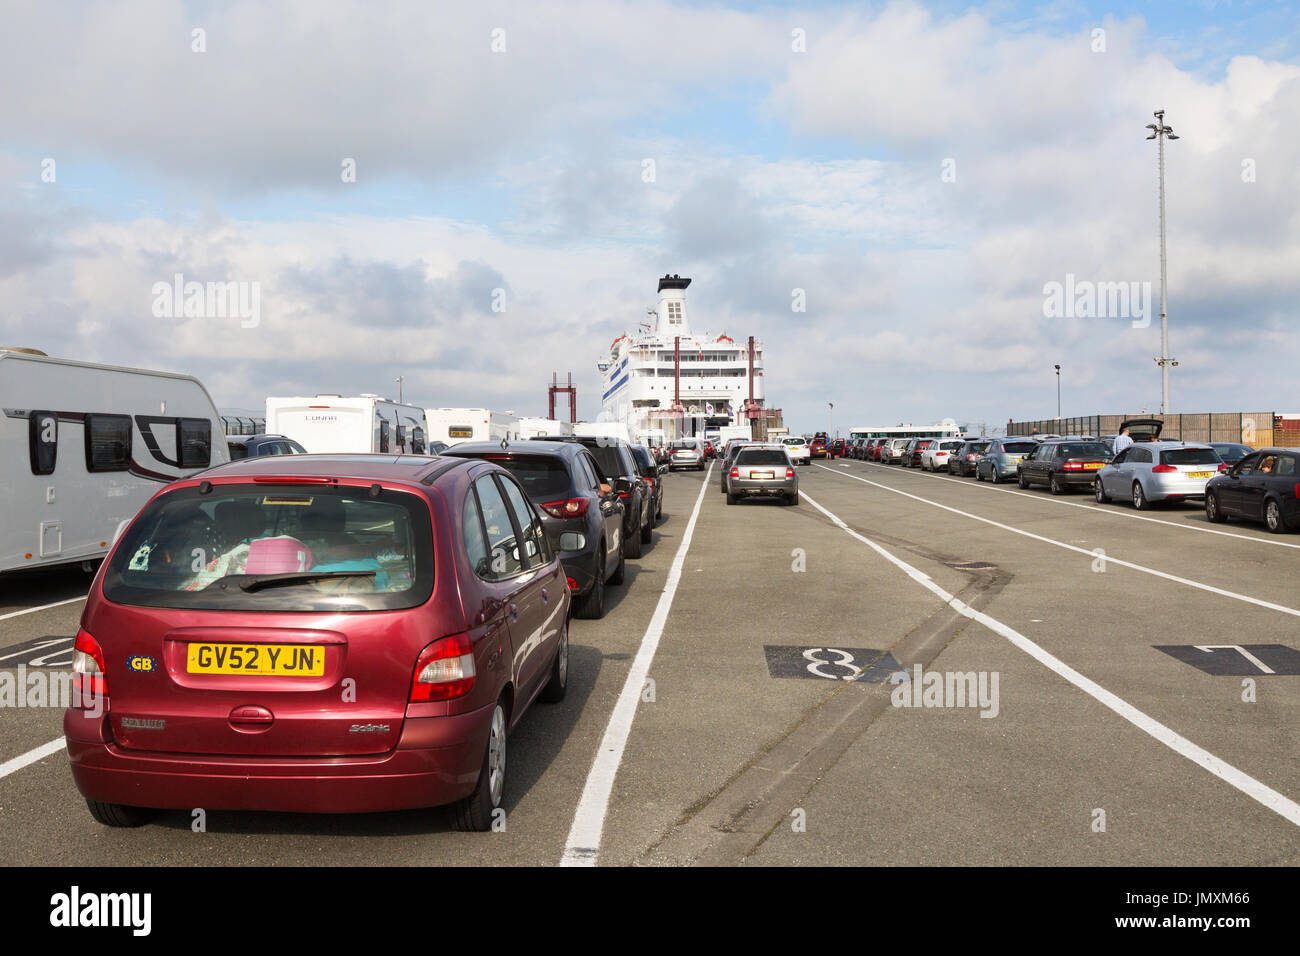 Cars waiting to board the car ferry at St Malo ferry port, St. Malo,  Brittany France - Stock Image